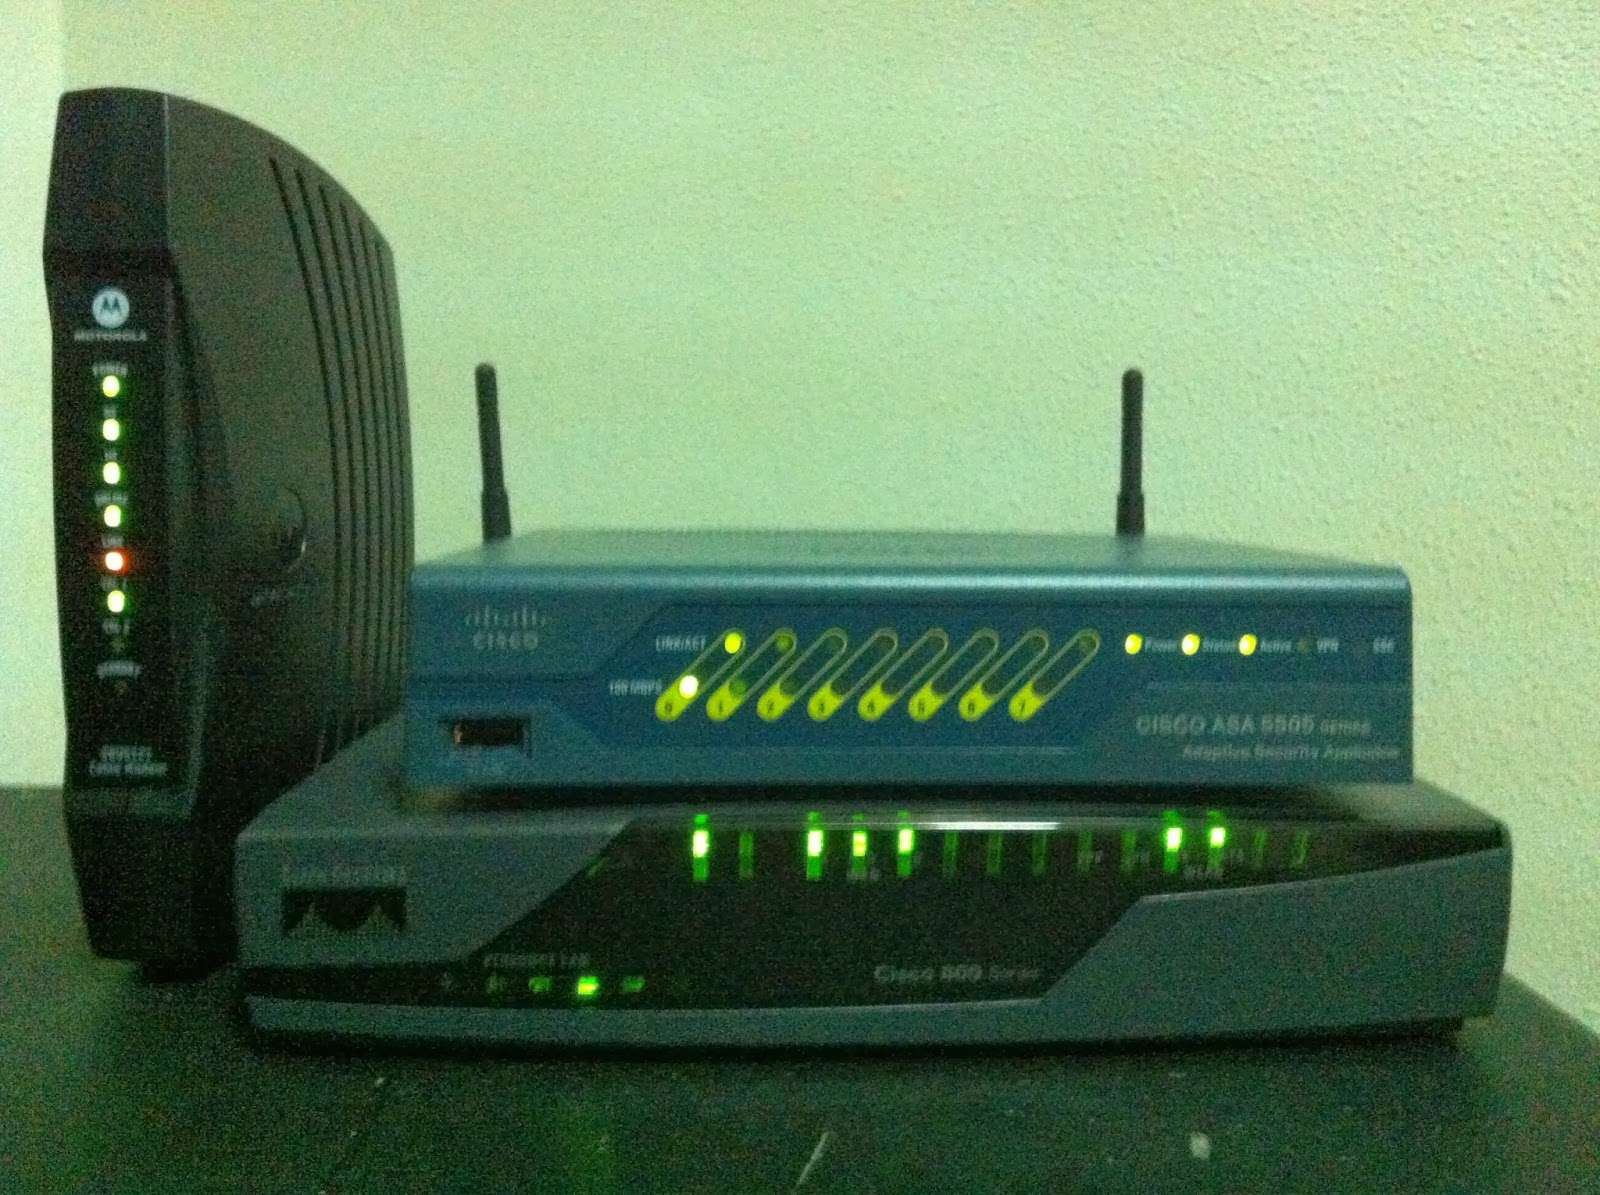 Dmz Network Diagram With 3 Convert Ps2 Keyboard To Usb Wiring My Lab: Configuring Cisco Asa 5505 Home Lab Firewall